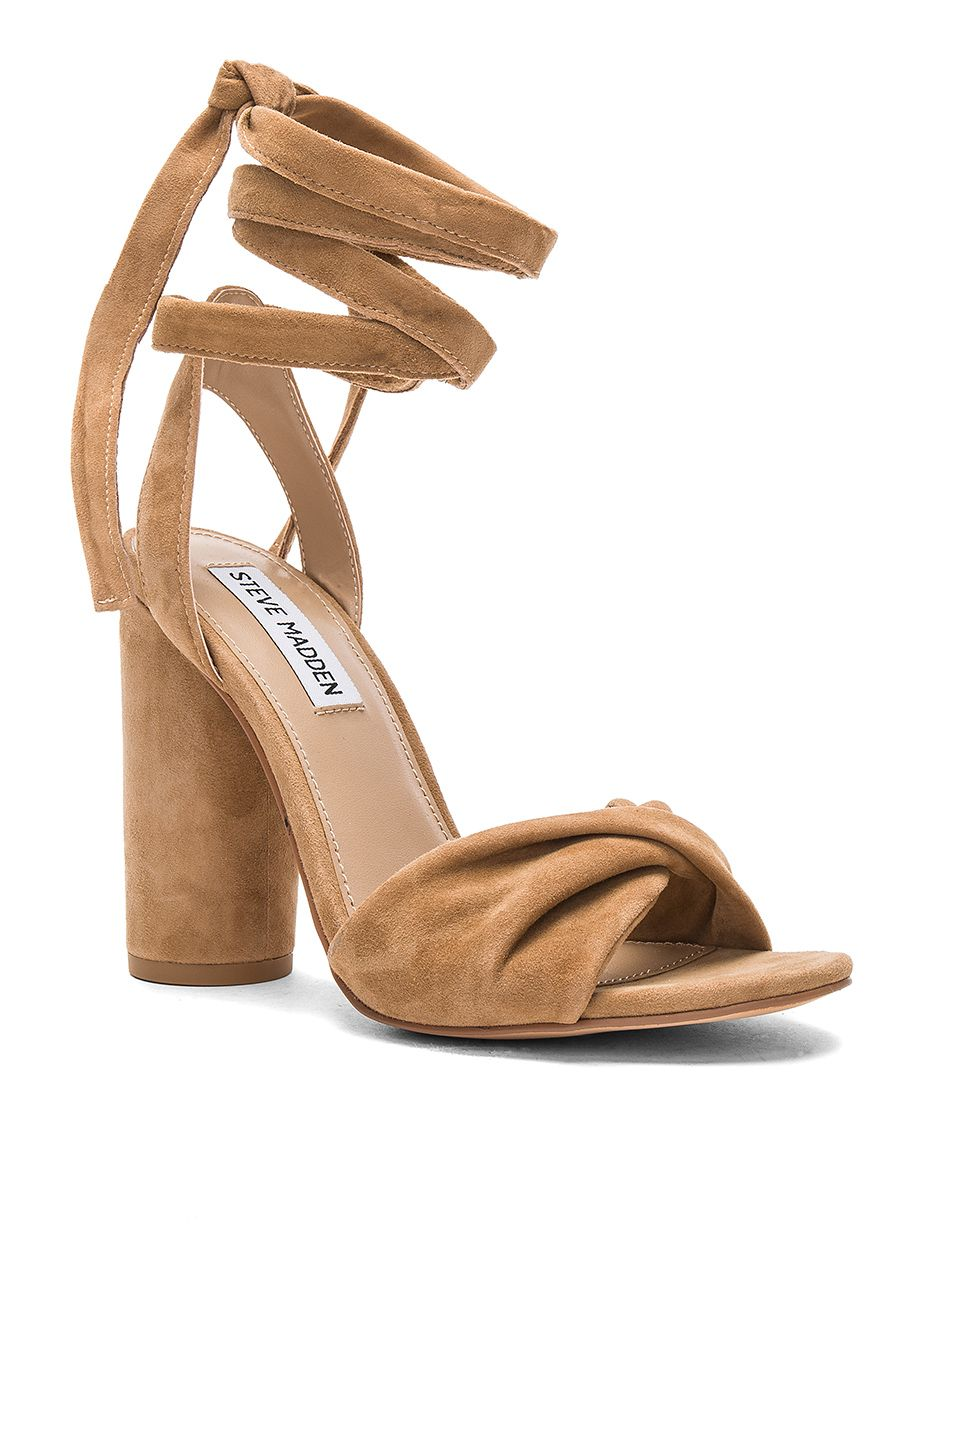 Shop for Steve Madden Clary Heel in Camel Suede at REVOLVE. Free day  shipping and returns, 30 day price match guarantee.